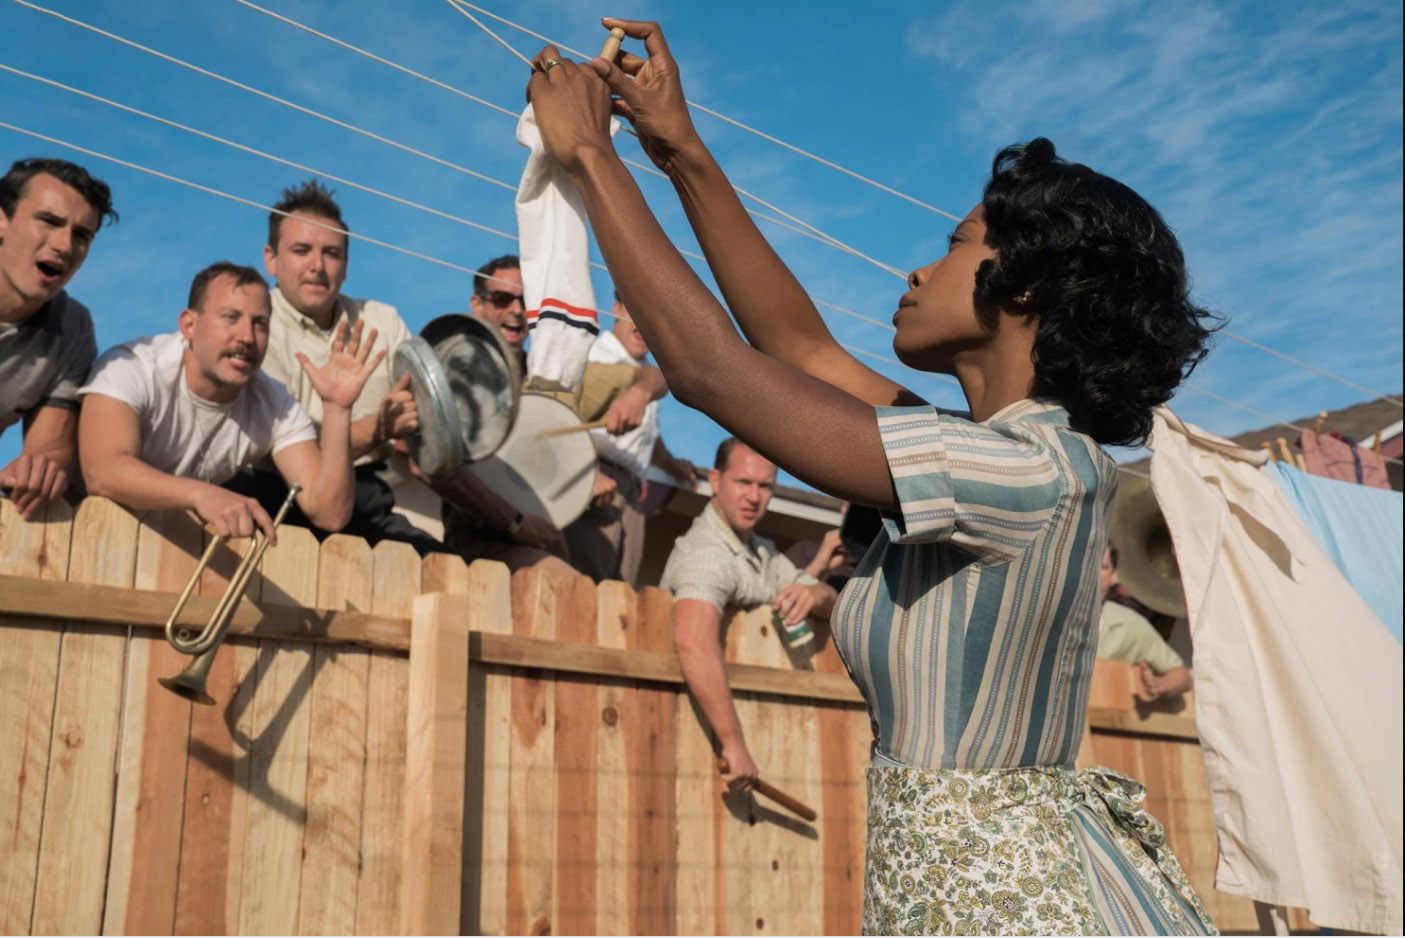 A Black American woman is seen holding up her laundry, as a group of white men holler at her over a wooden fence.